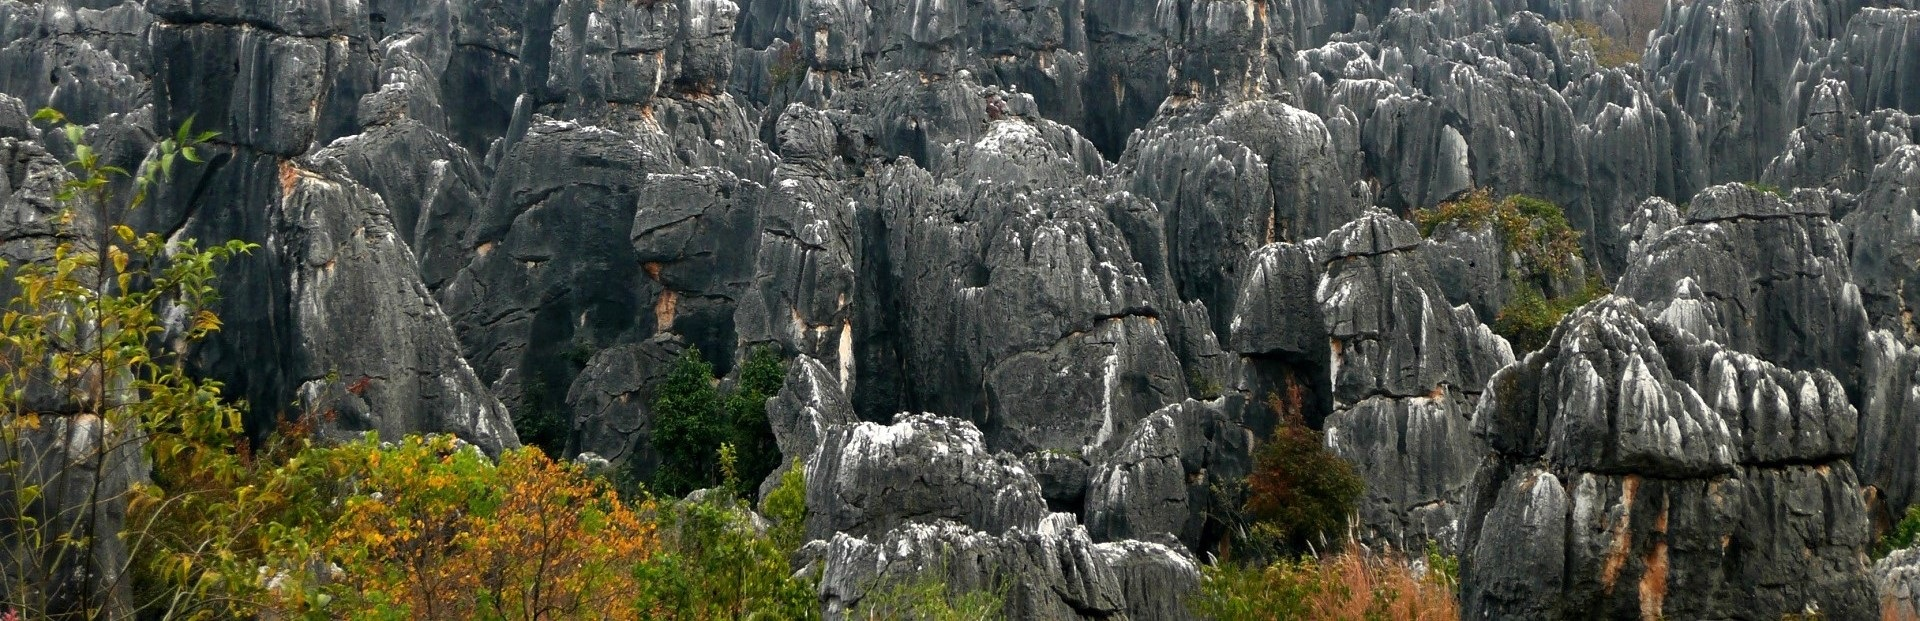 Shilin_Stone_Forest_01 (4)